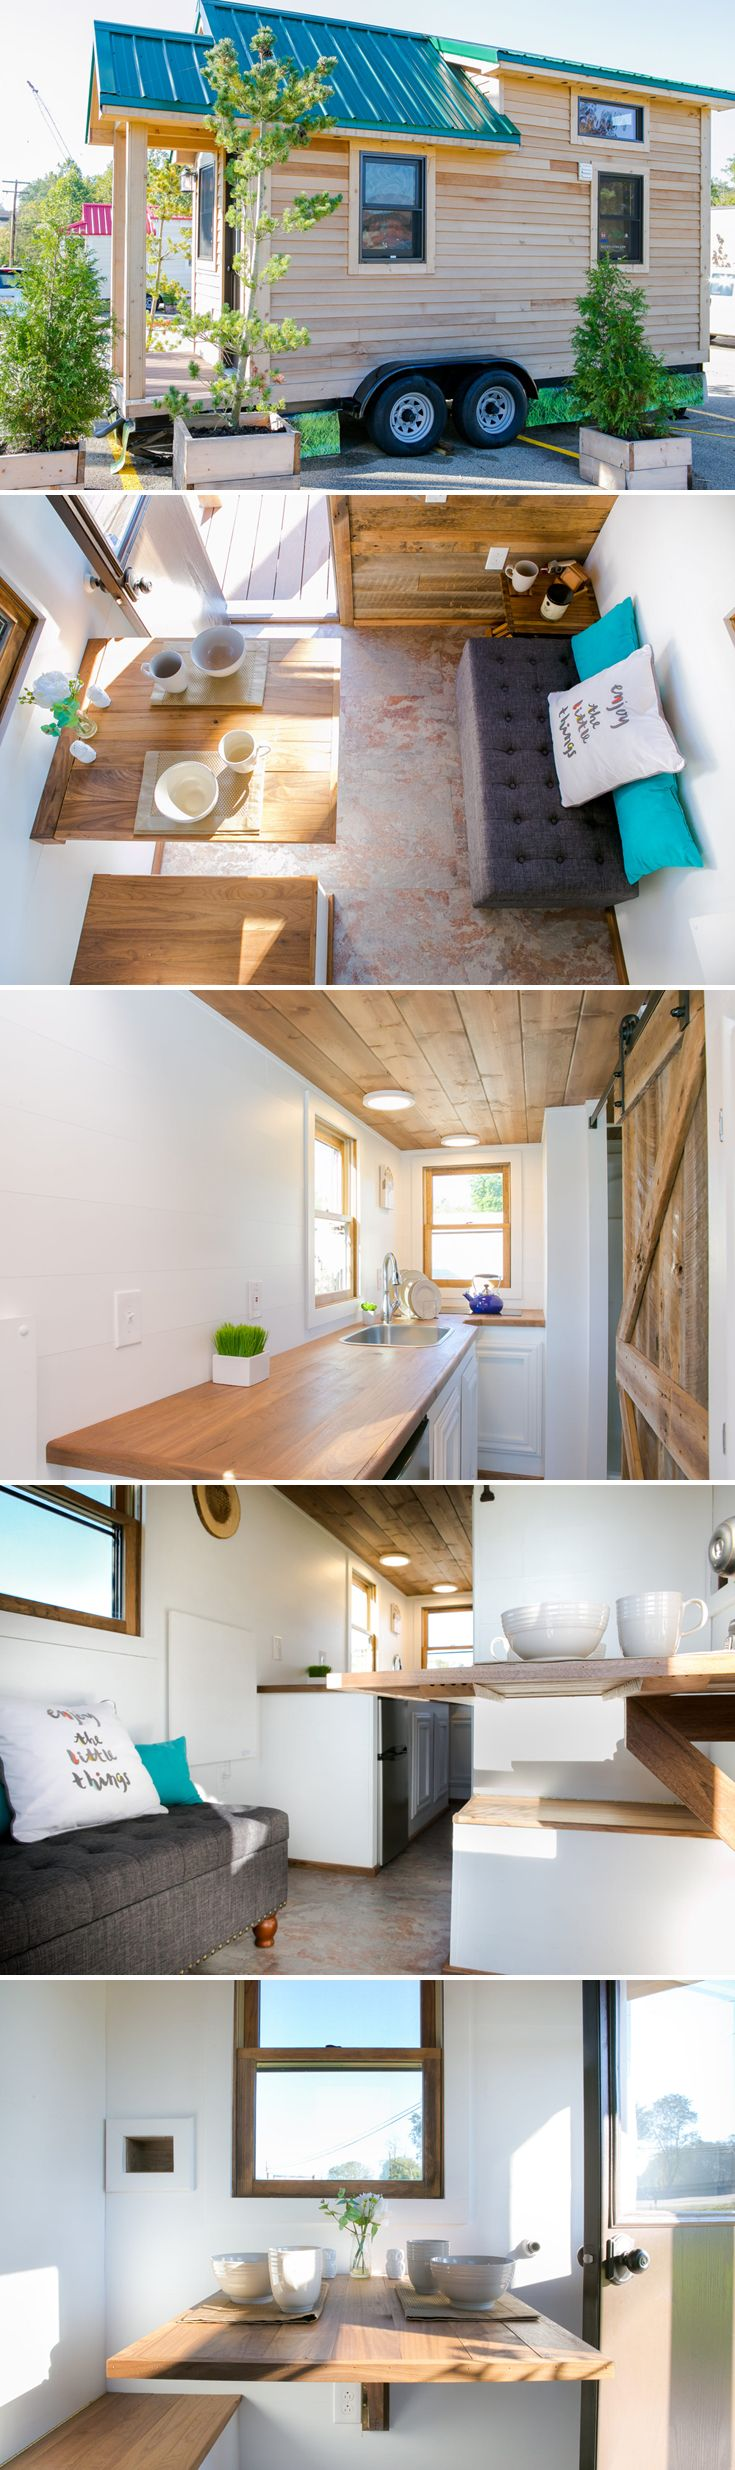 The Roving is a 154 sq.ft. tiny house by 84 Lumber featuring a reclaimed wood accent wall, walnut stained vaulted ceiling, and custom designed barn door.